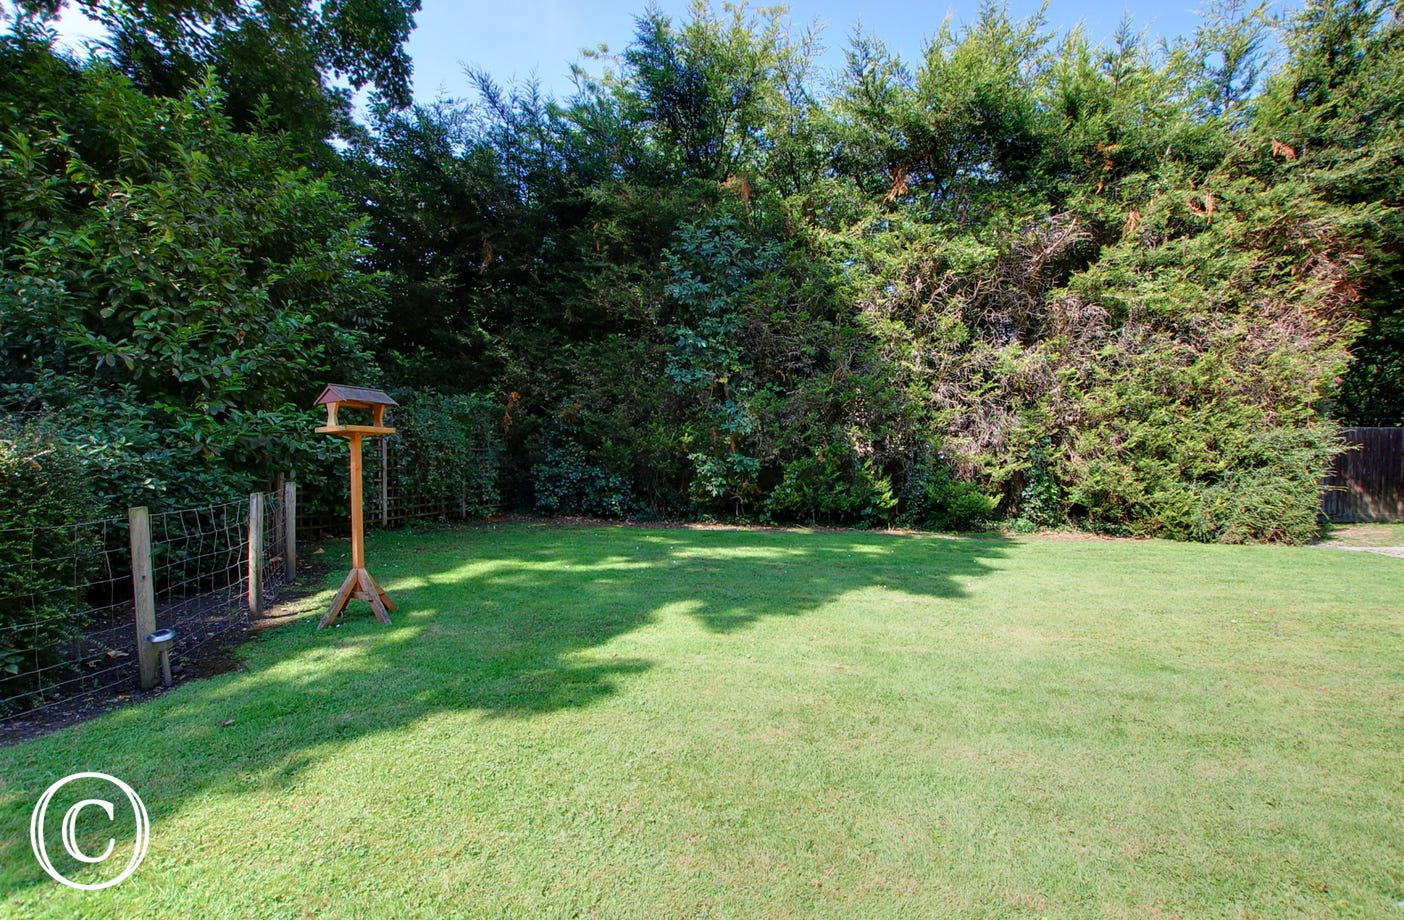 Fully enclosed rear garden with a lovely lawn and mature hedges